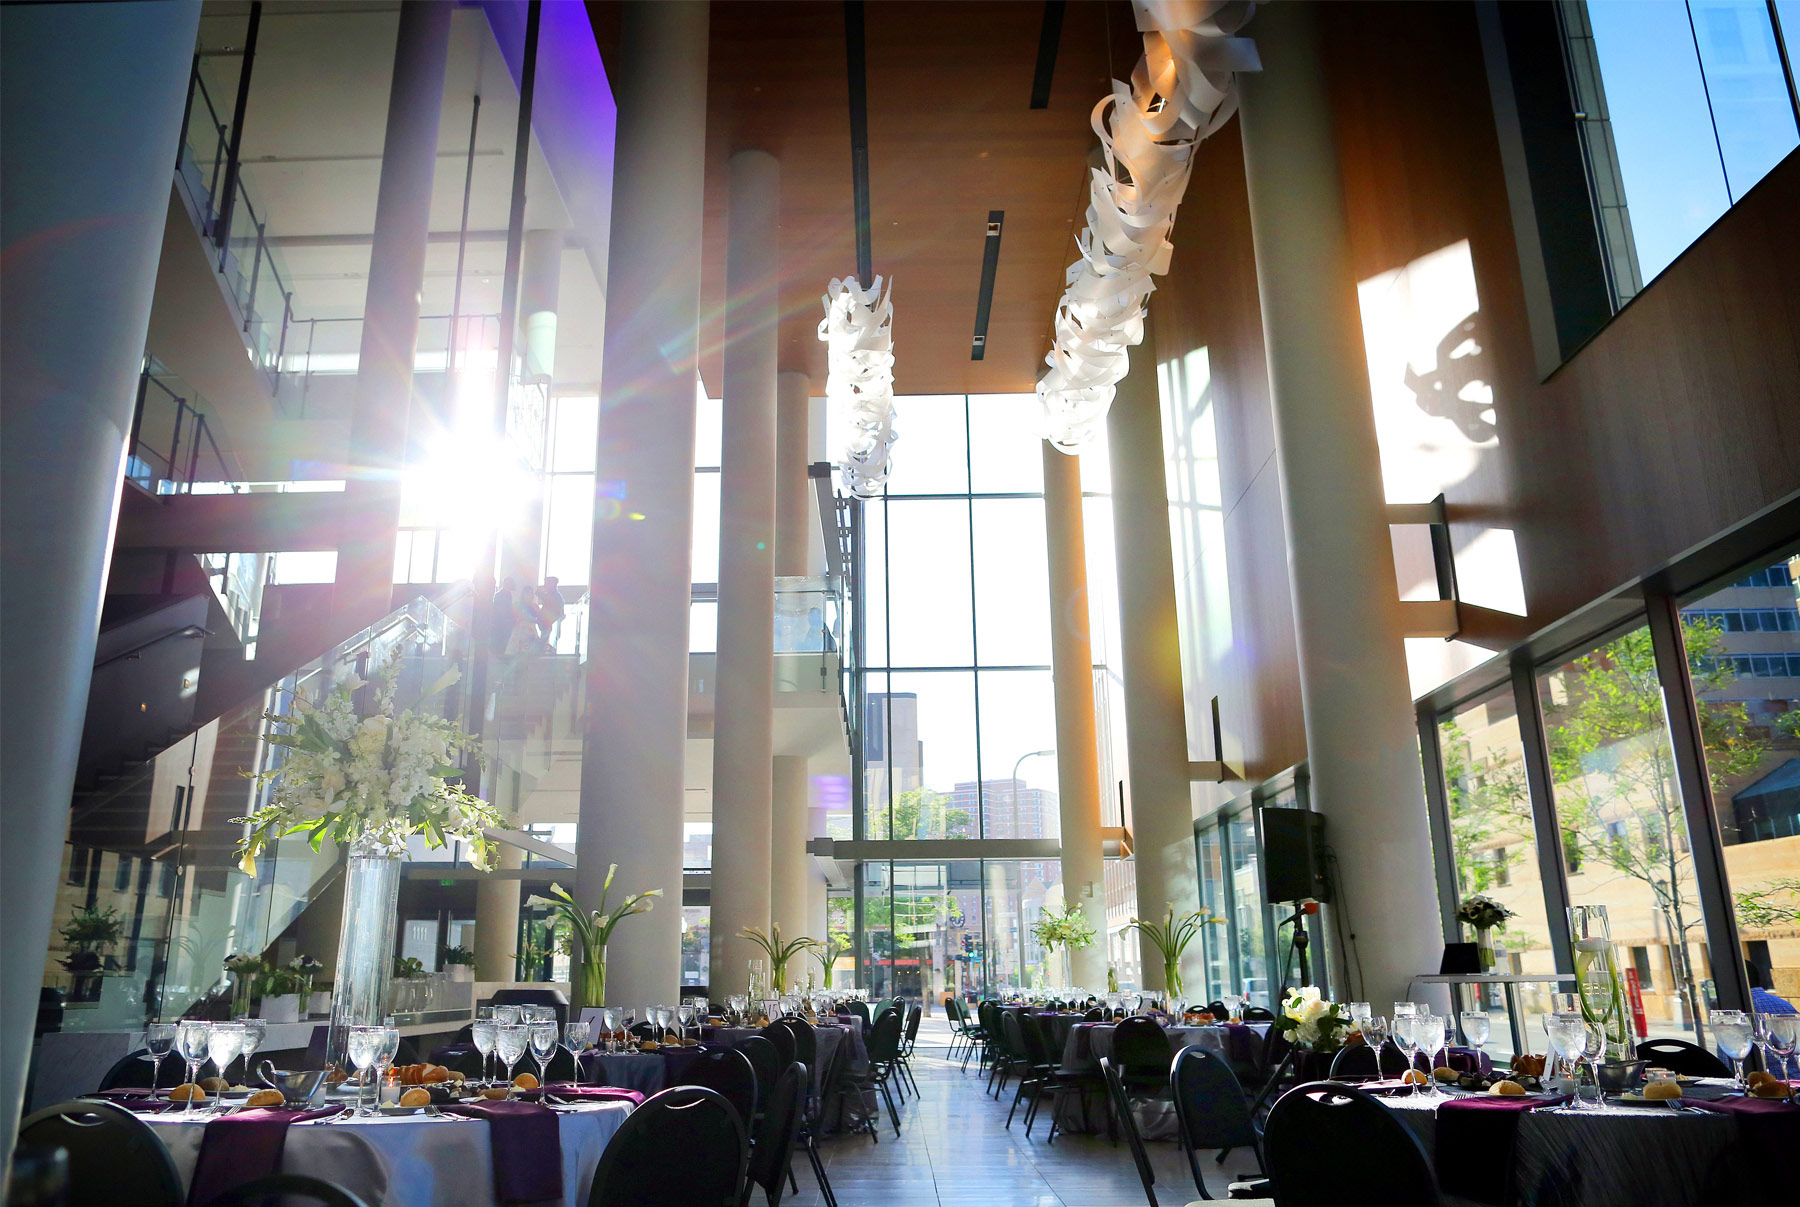 15-Minneapolis-Minnesota-Wedding-Photography-by-Vick-Photography-Orchestra-Hall-Downtown-Reception-Table-Settings-Decor-Lisa-and-Jared.jpg